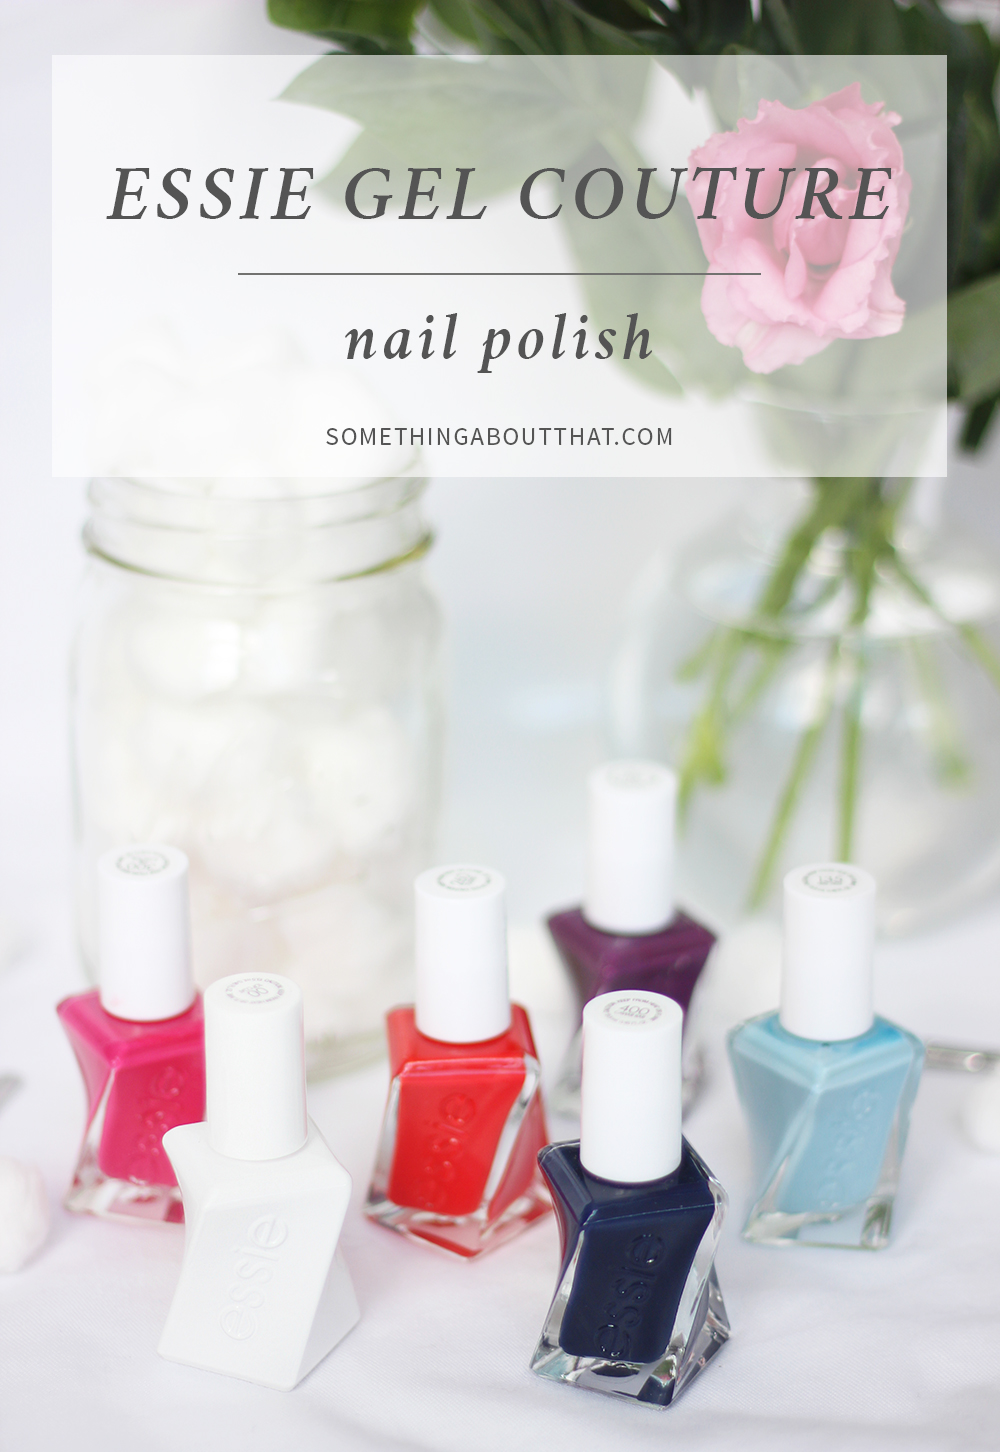 essie gel couture Nail Polish - Review - Something About That